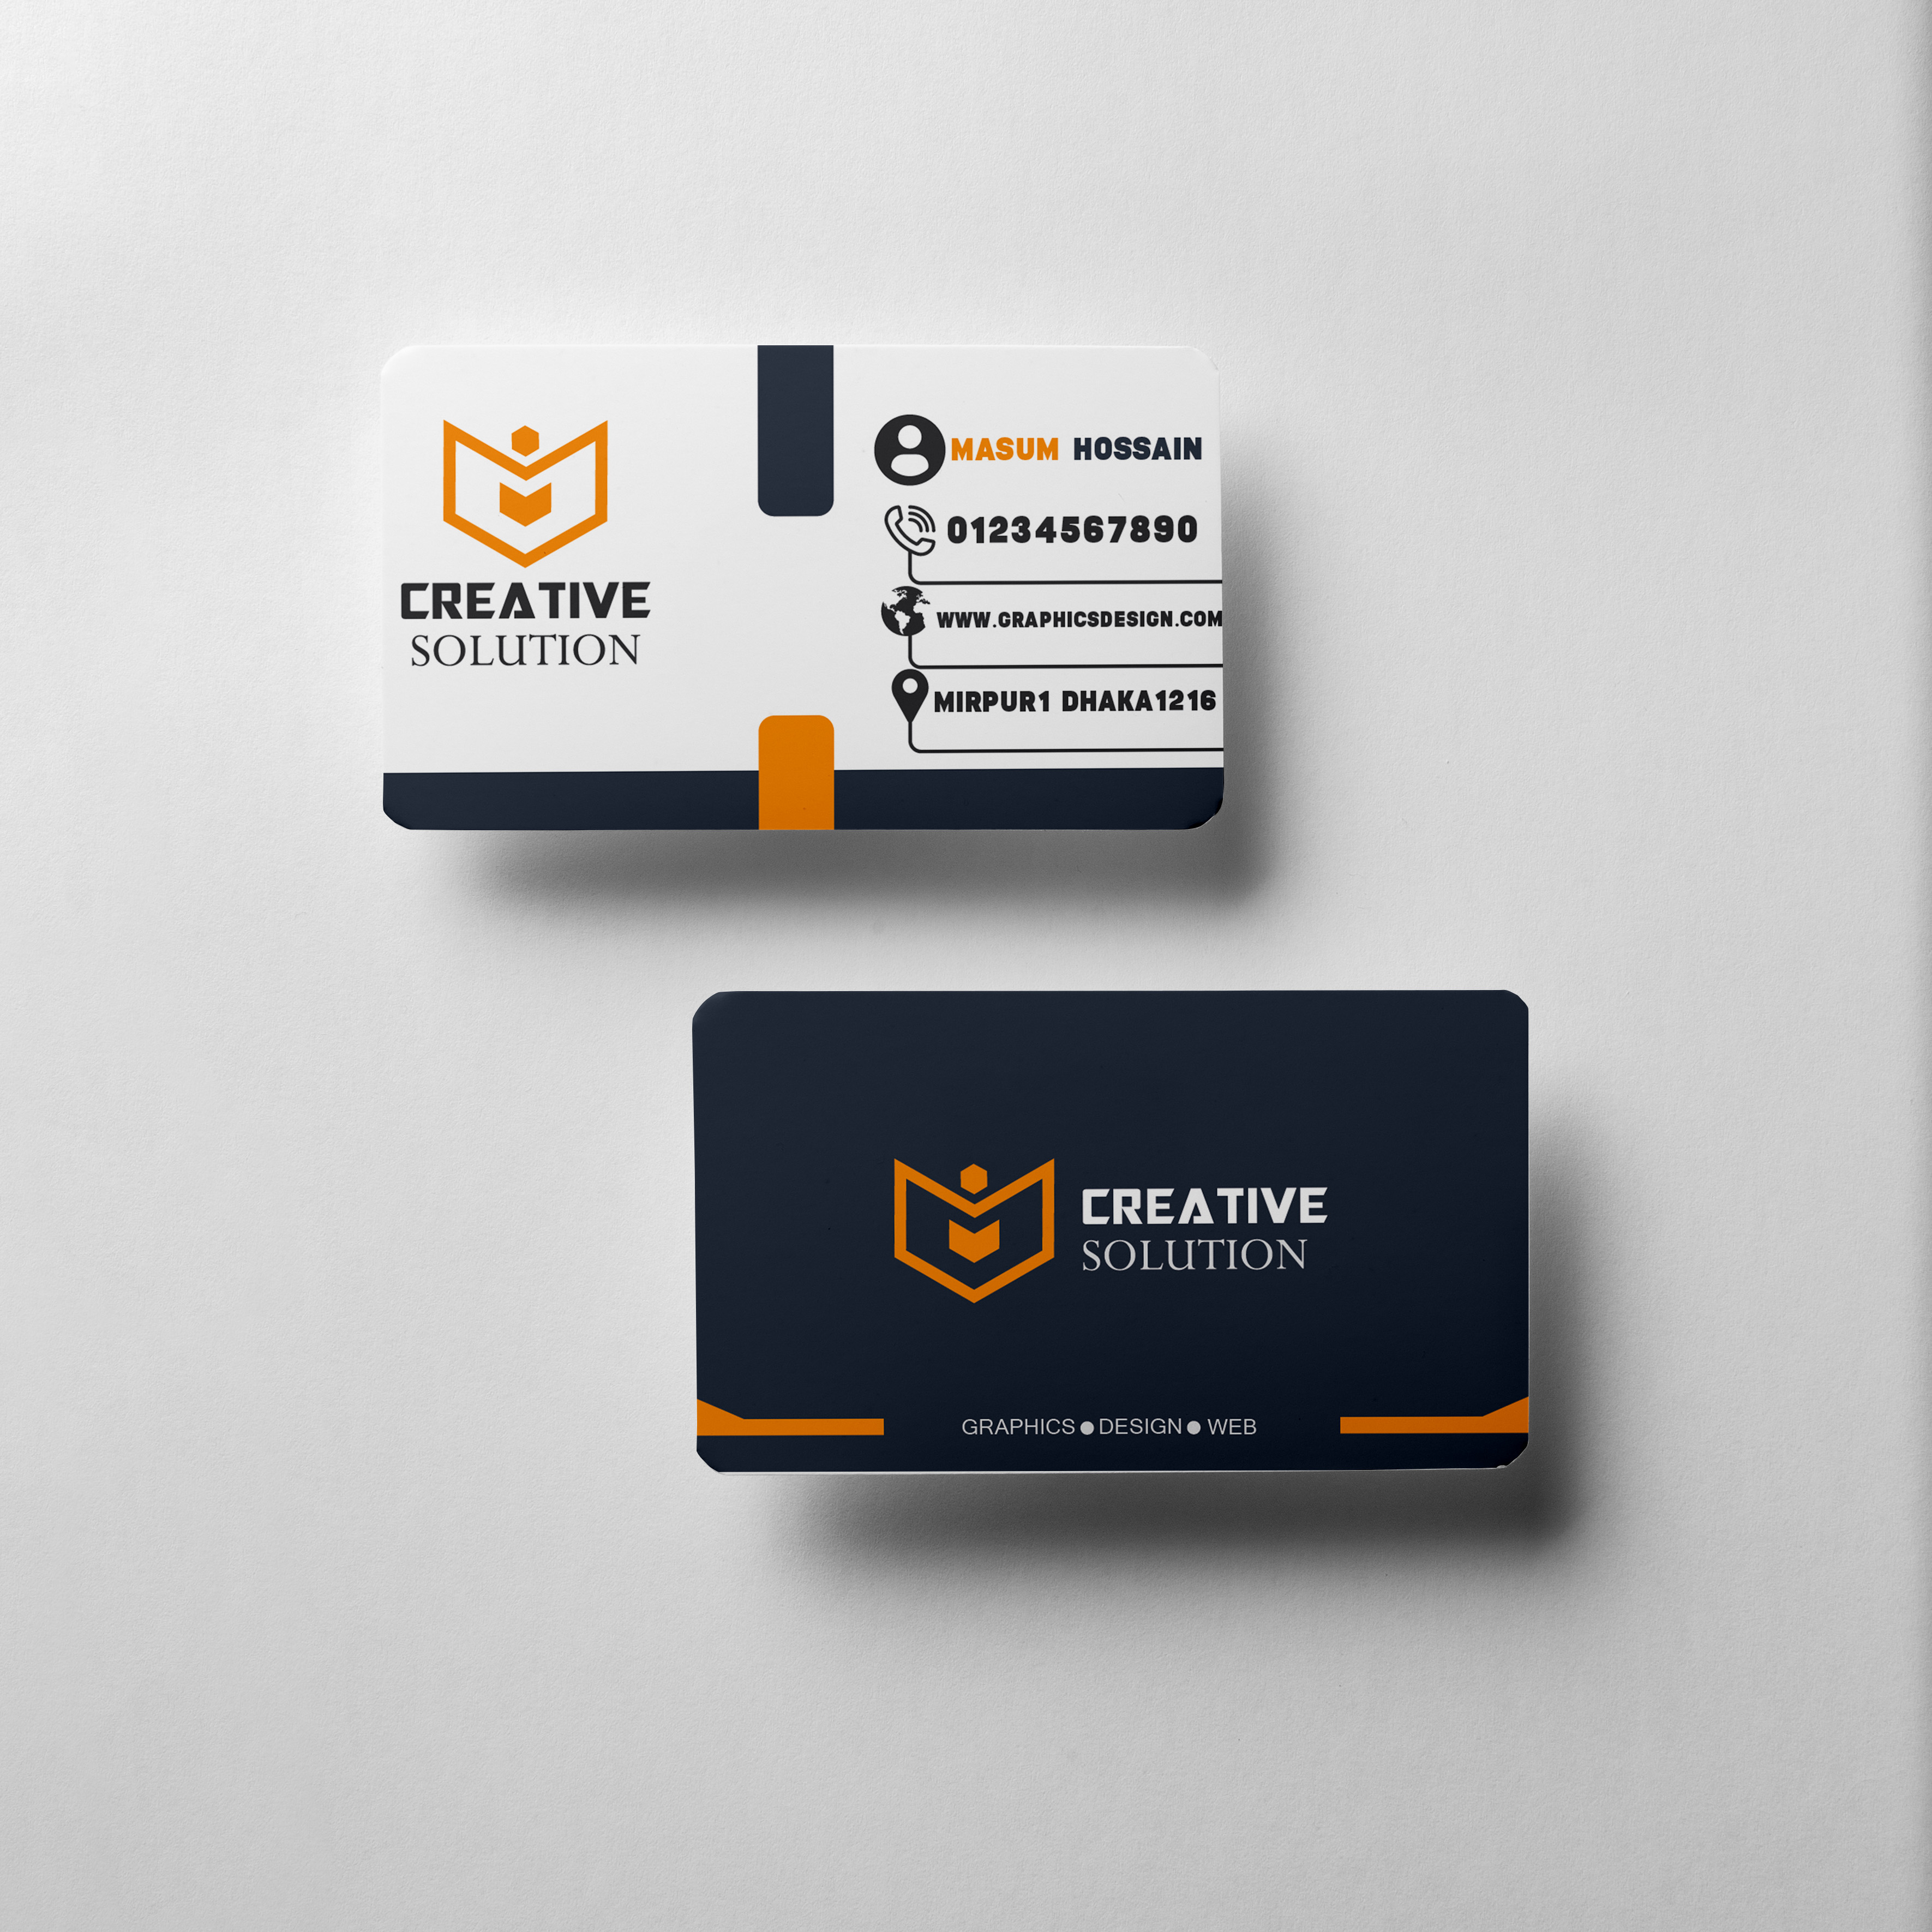 I will do Professional Business Card design like this